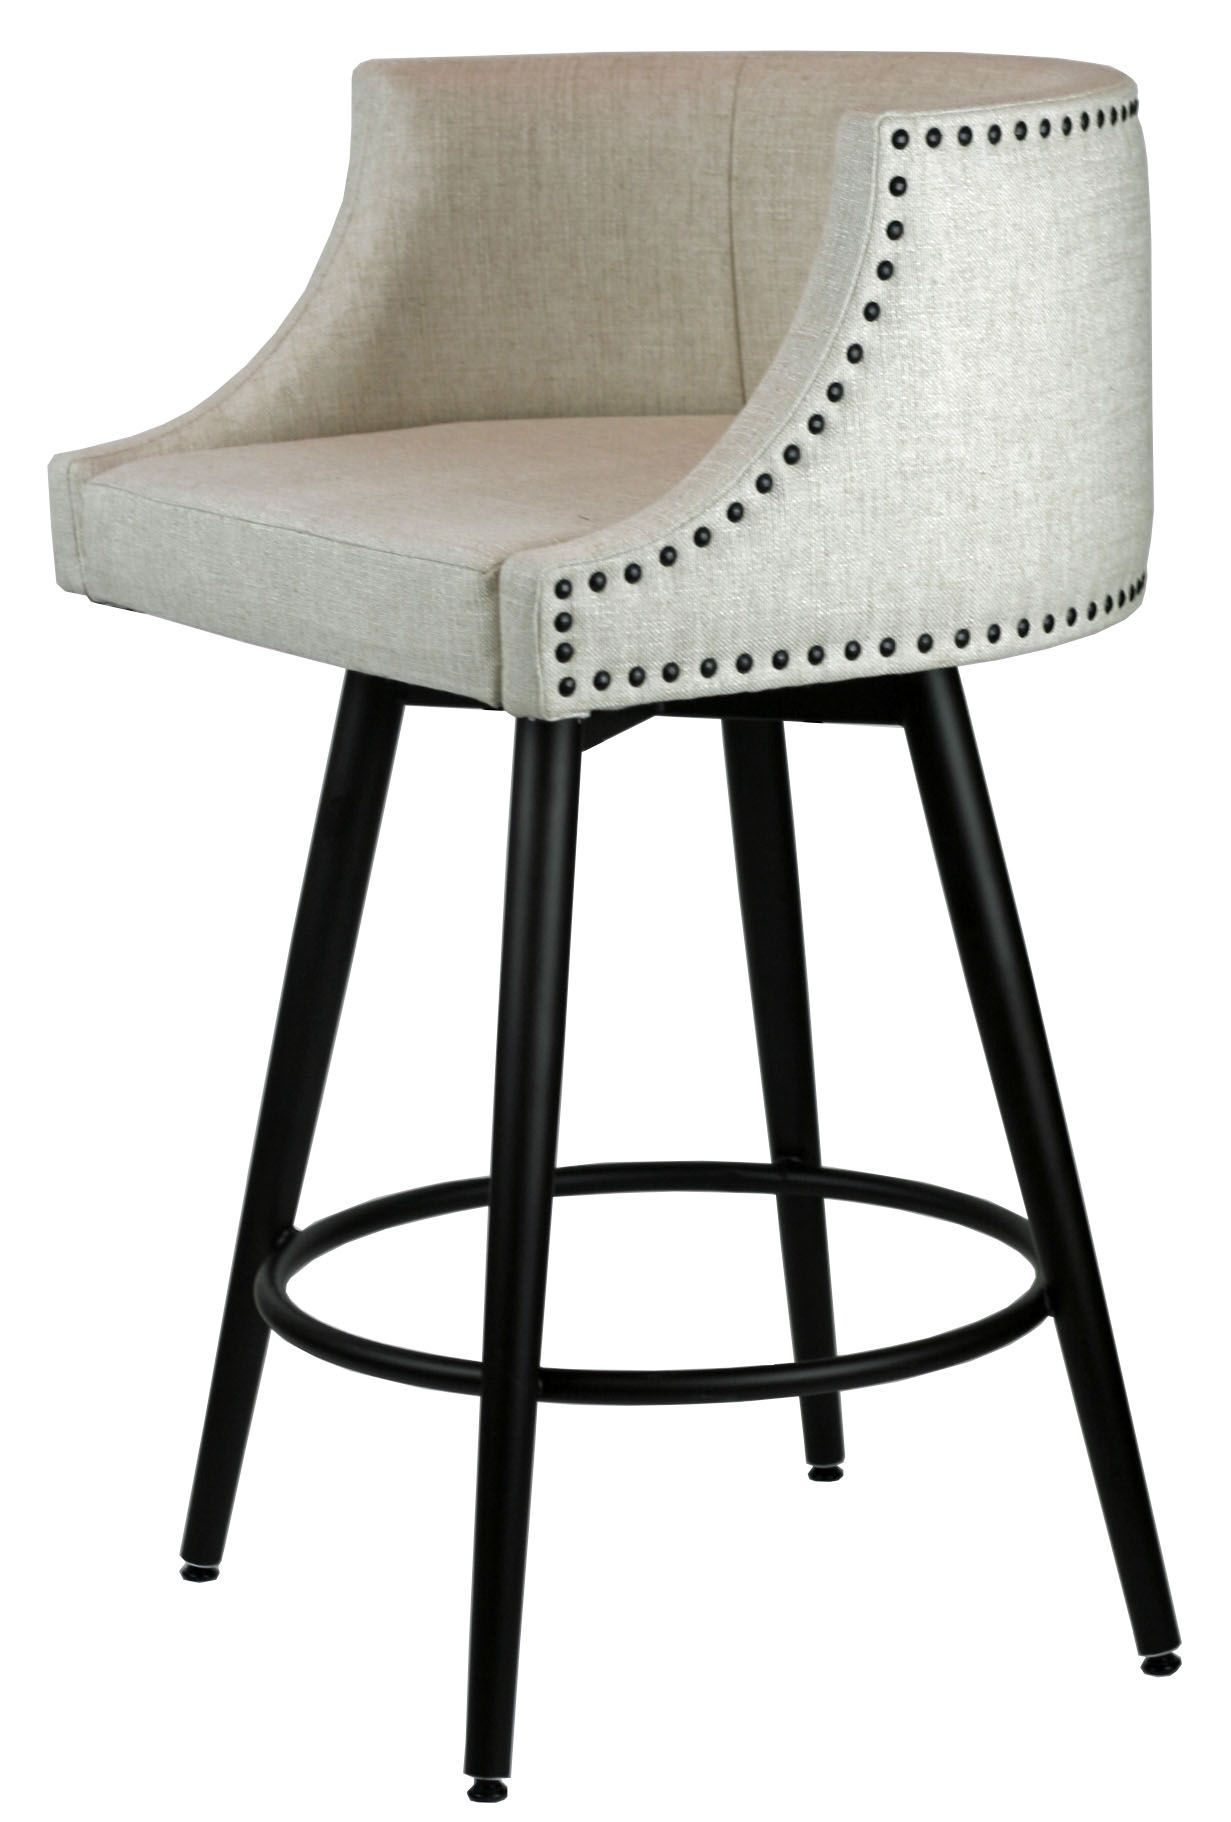 Comfortable Swivel Stool Wmemory Return  Kitchen Stools With Back Stools With Backs Leather